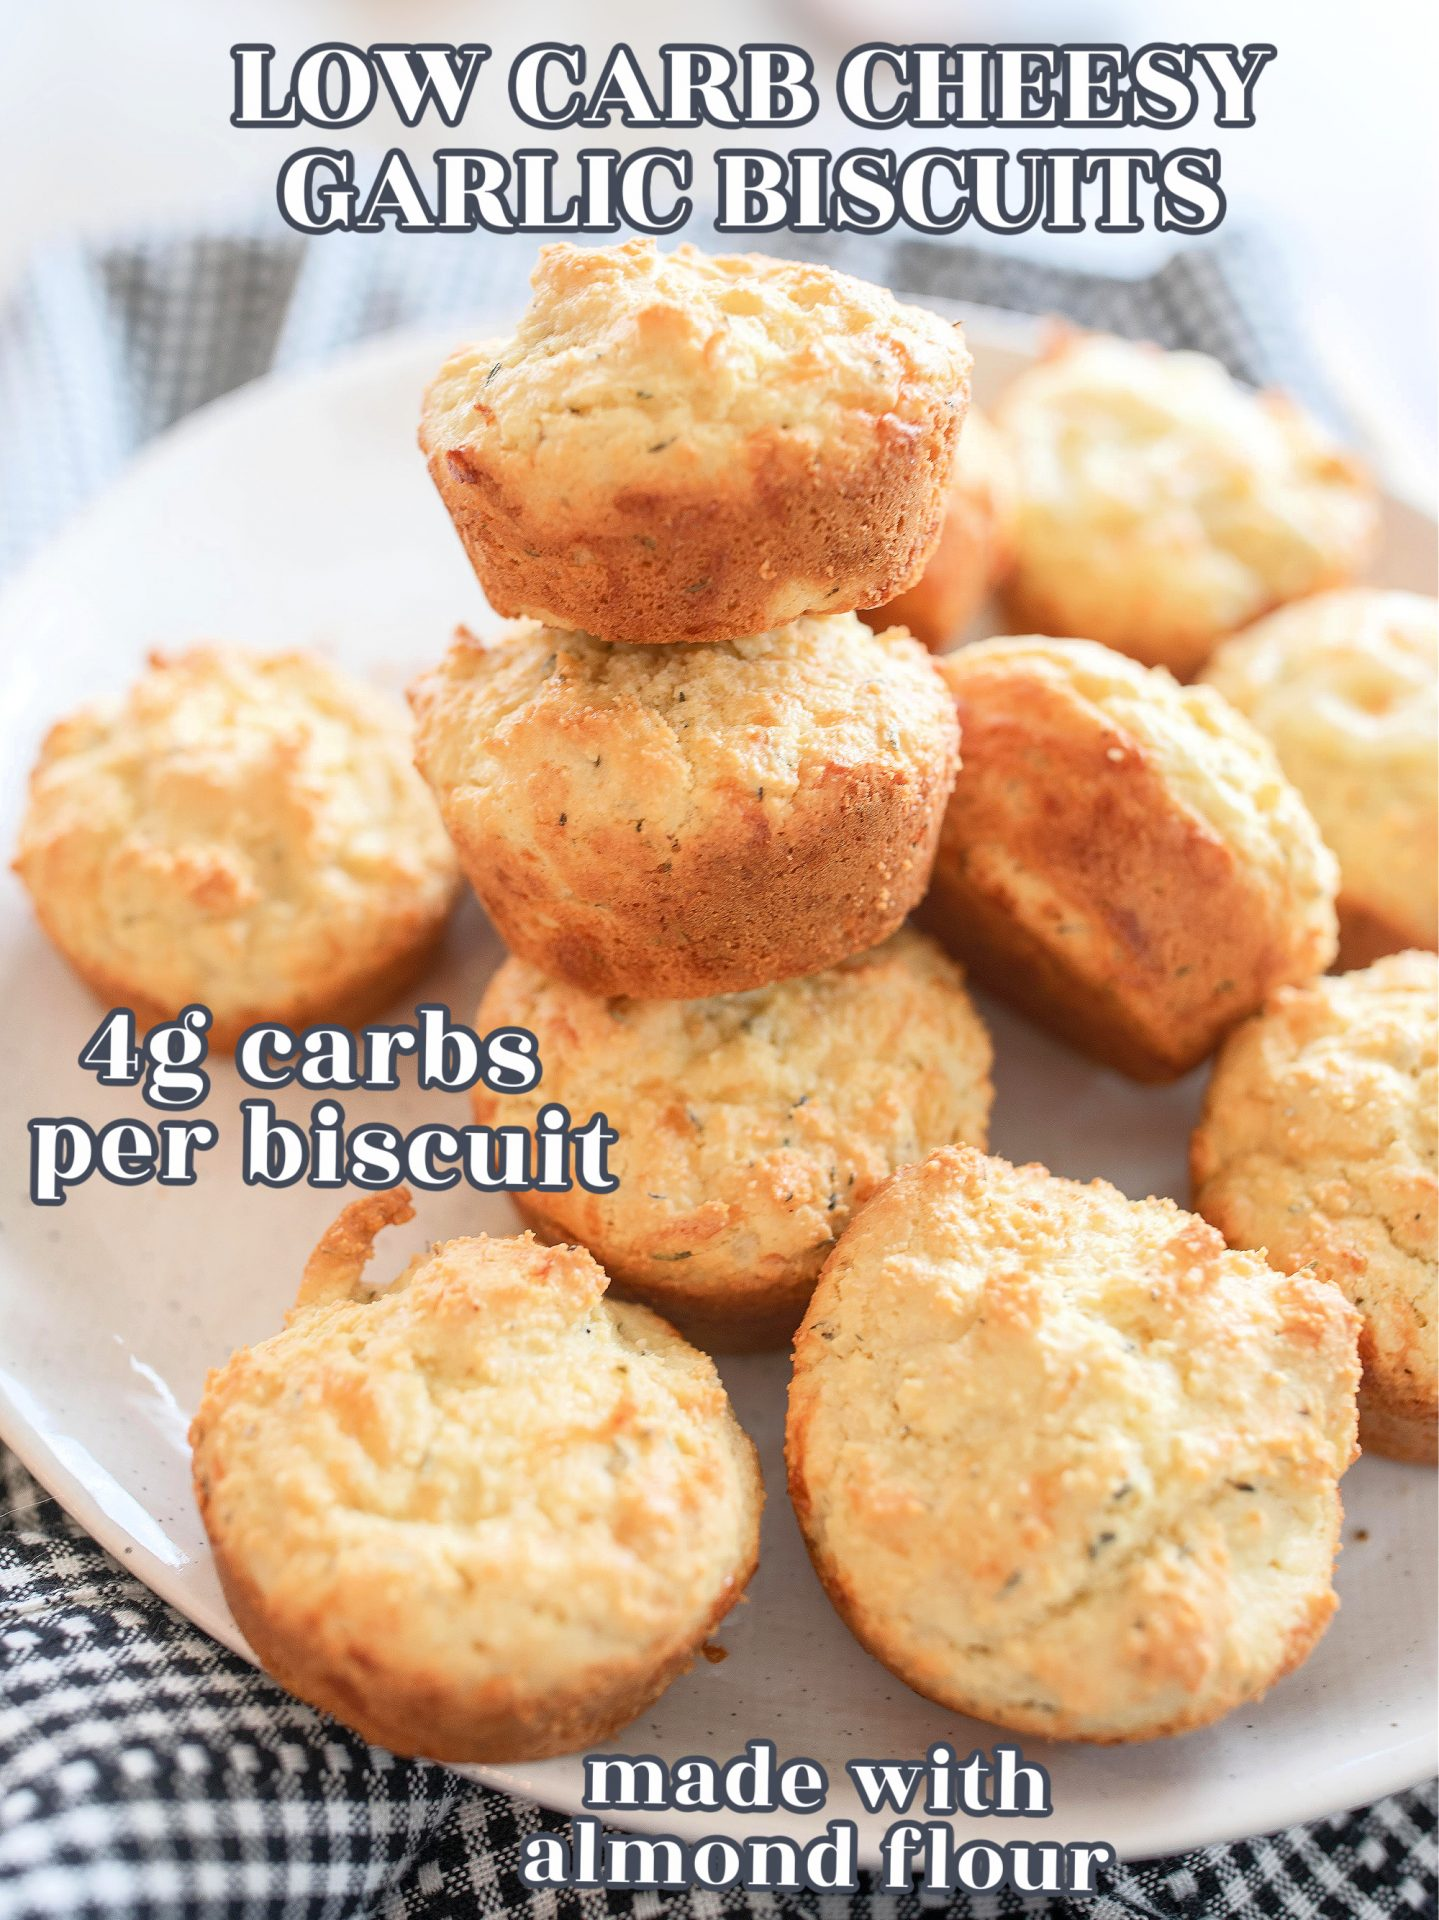 keto, garlic bread, low carb, biscuits, garlic cheese, biscuits, almond flour, no carb, healthy low carb bread, careless, keto diet, gluten-free, dairy-free, pizza